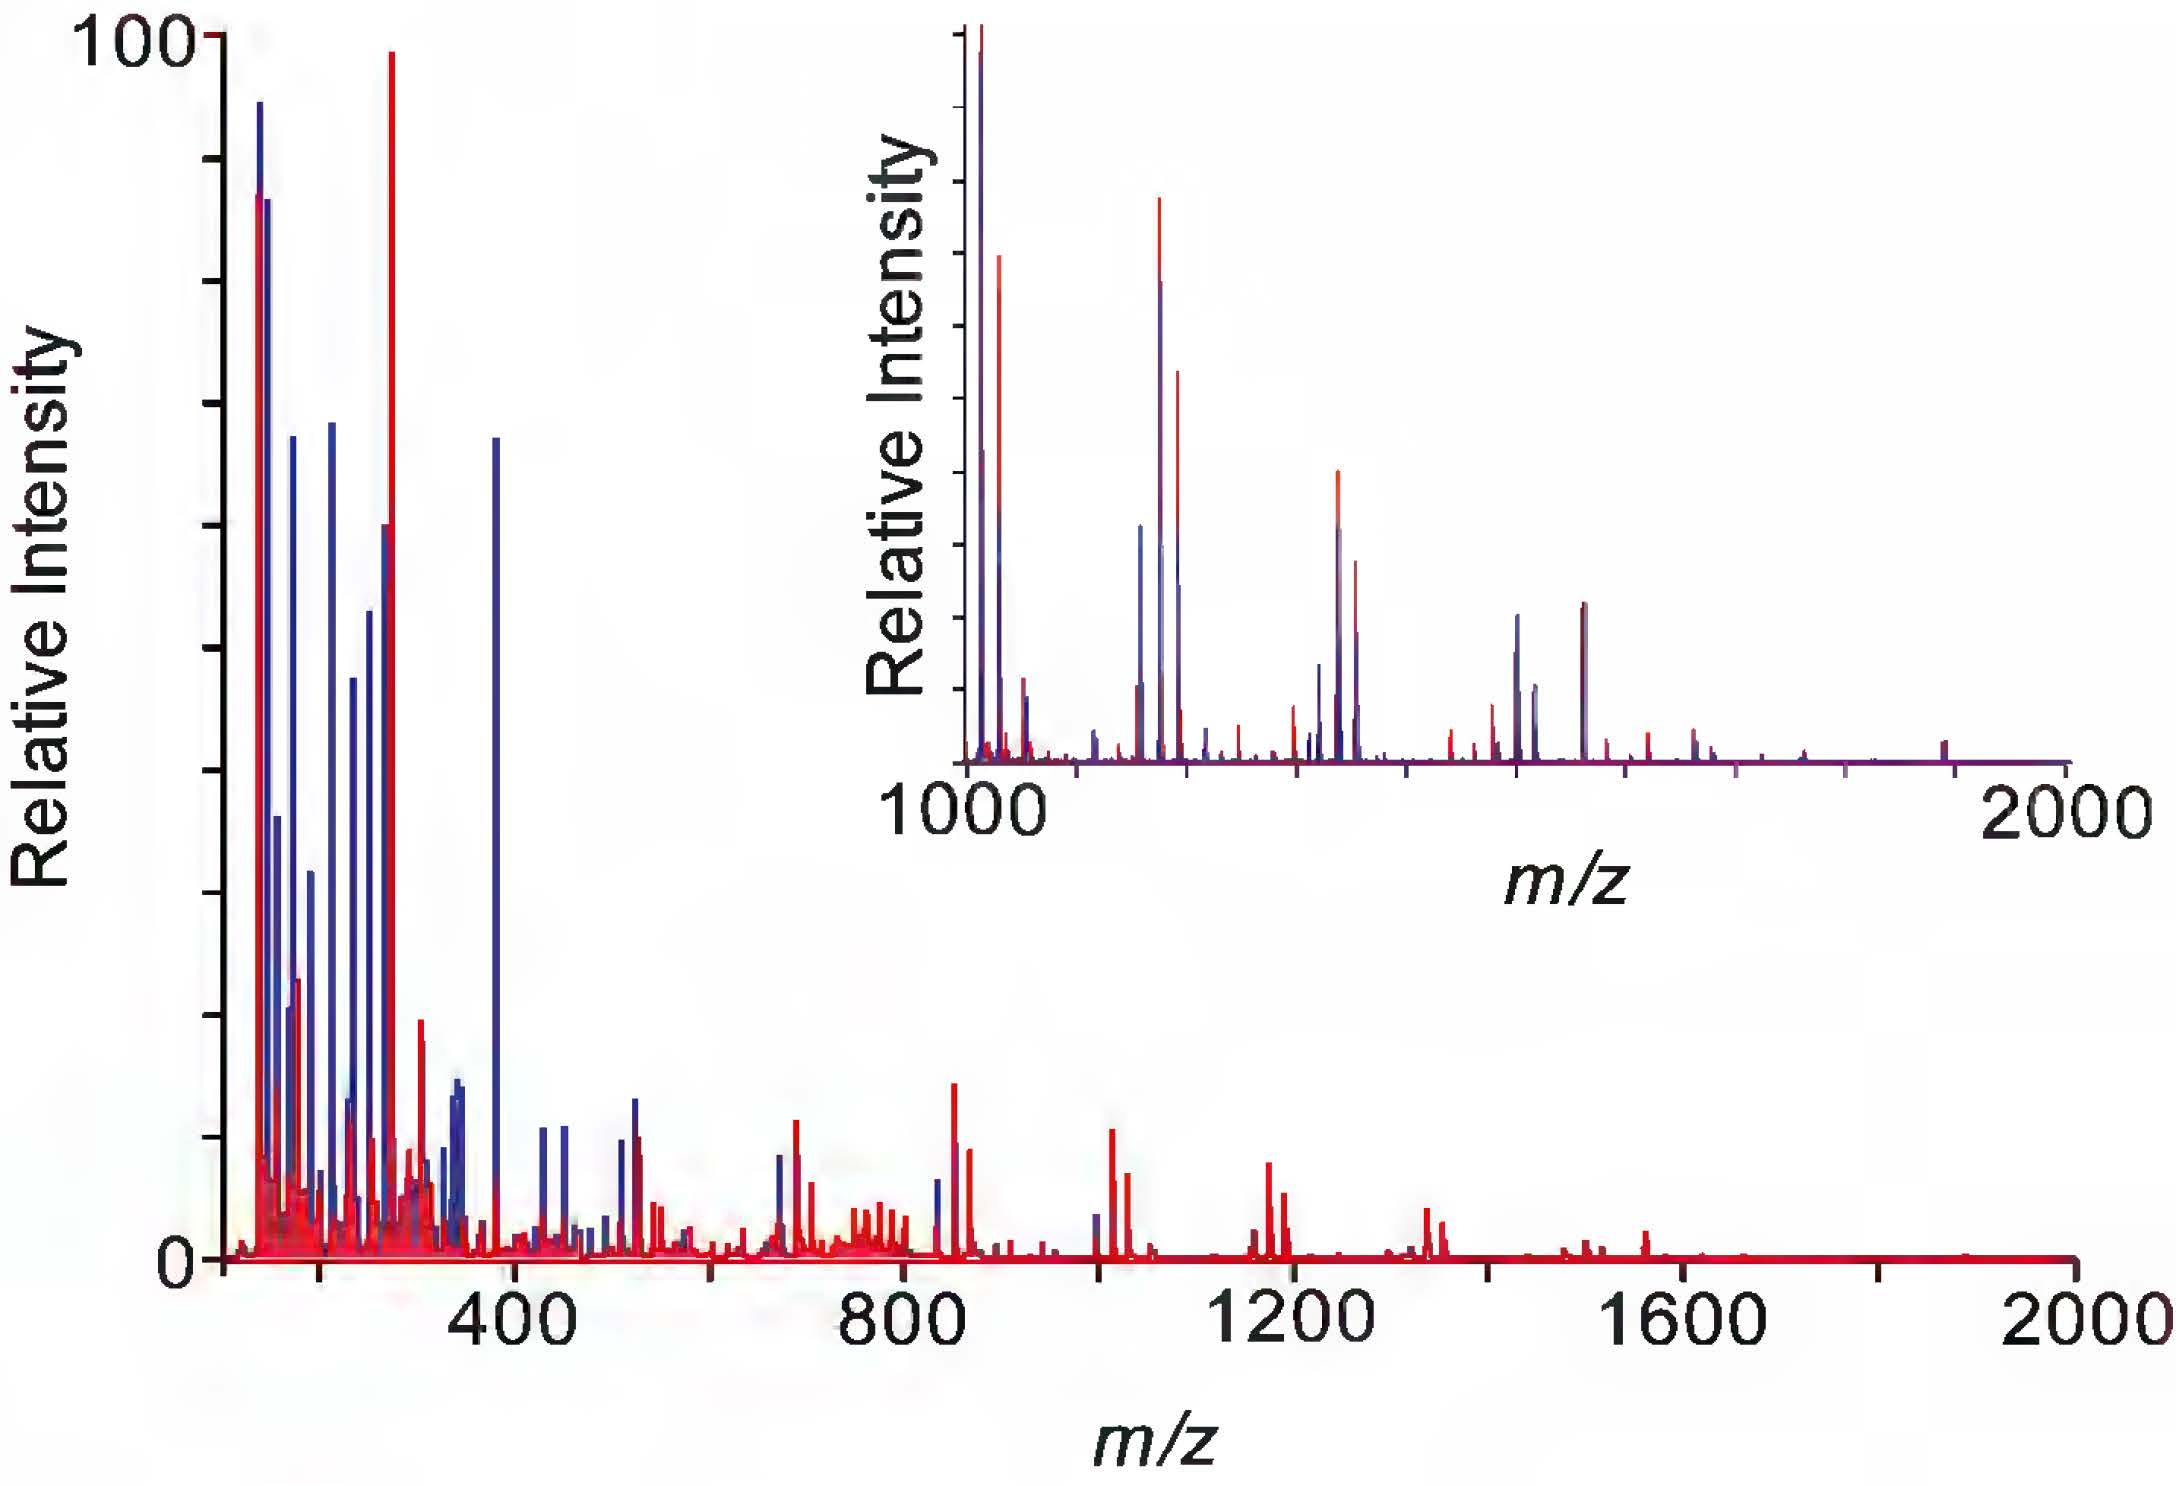 Figure 6.  Mass spectra of bacterial colony samples when matrix is applied via the HTX TM-Sprayer or sieve. Metabolites with  m/z  100-2000 were acquired. The inlay zooms in on the higher mass region,  m/z  1000-2000, where dry sieving does not generate as many peaks as the HTX TM-Sprayer.